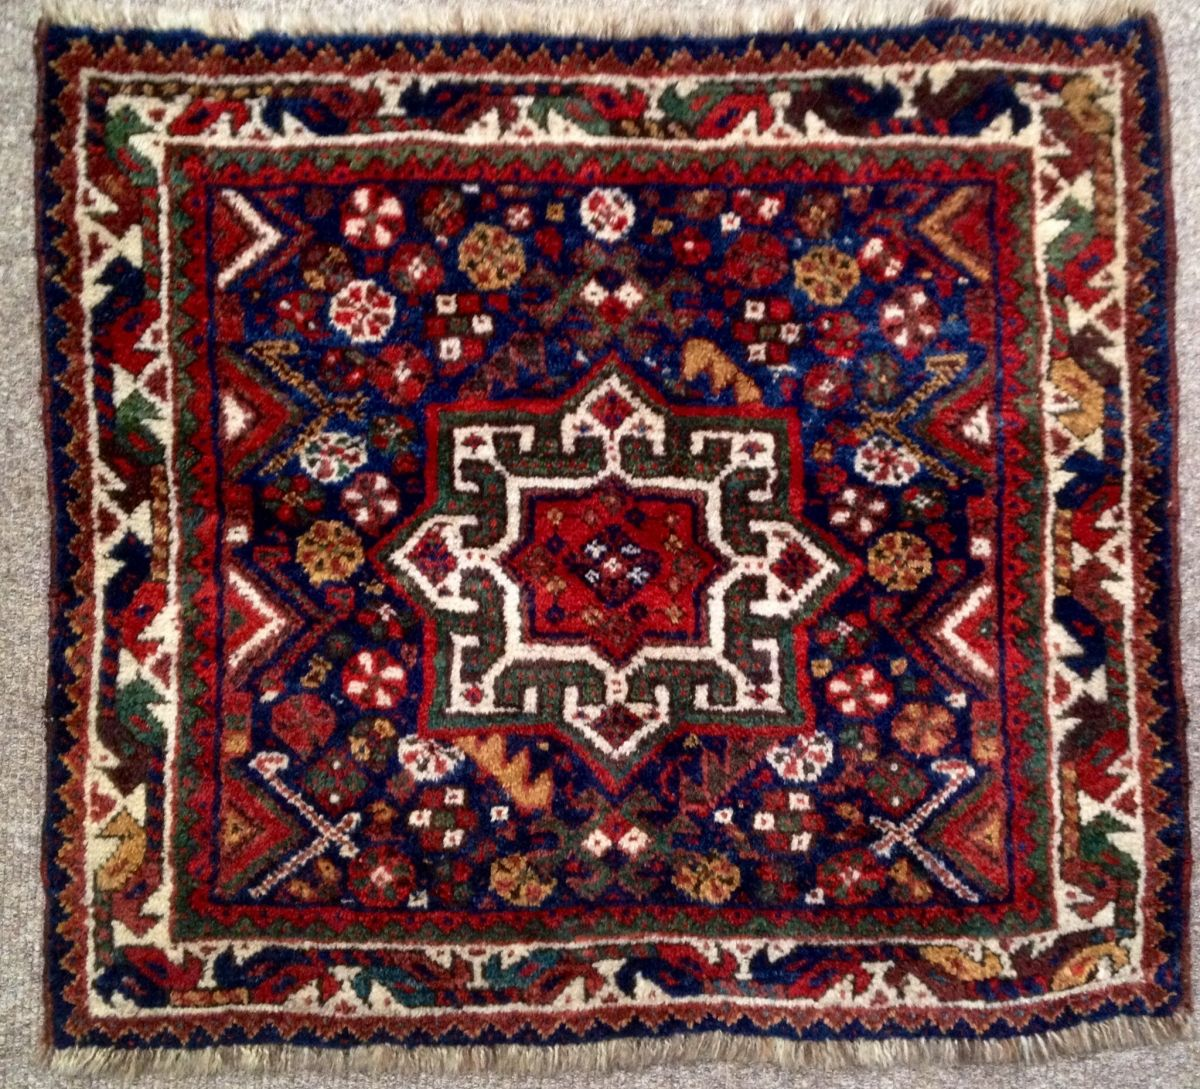 Antique Khamseh Small Square Rug Full Pile All Wool And Natural Dyes Including Lots Of Lovely